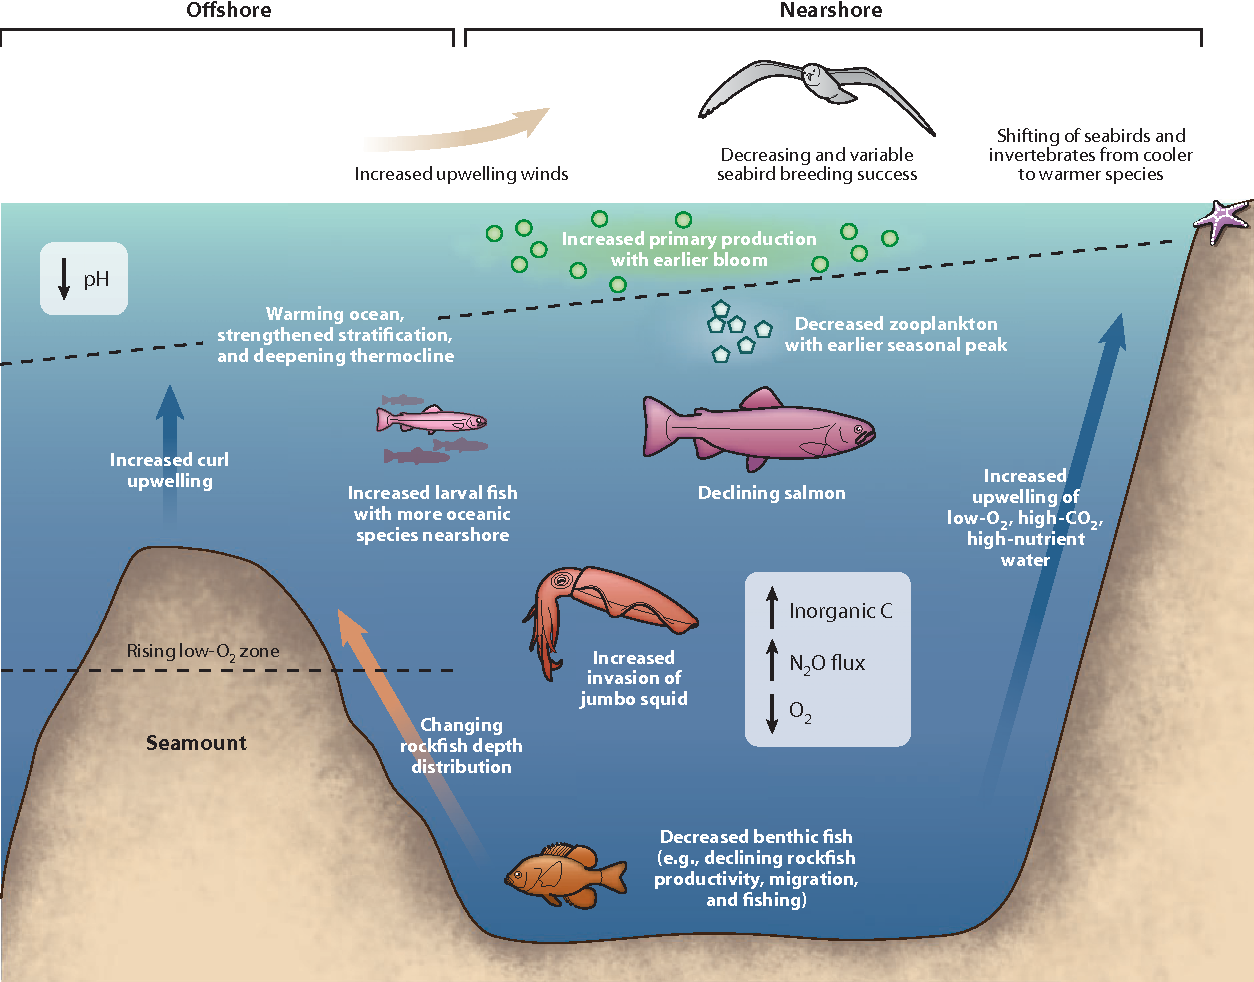 Figure 3 From Climate Change Impacts On Marine Ecosystems